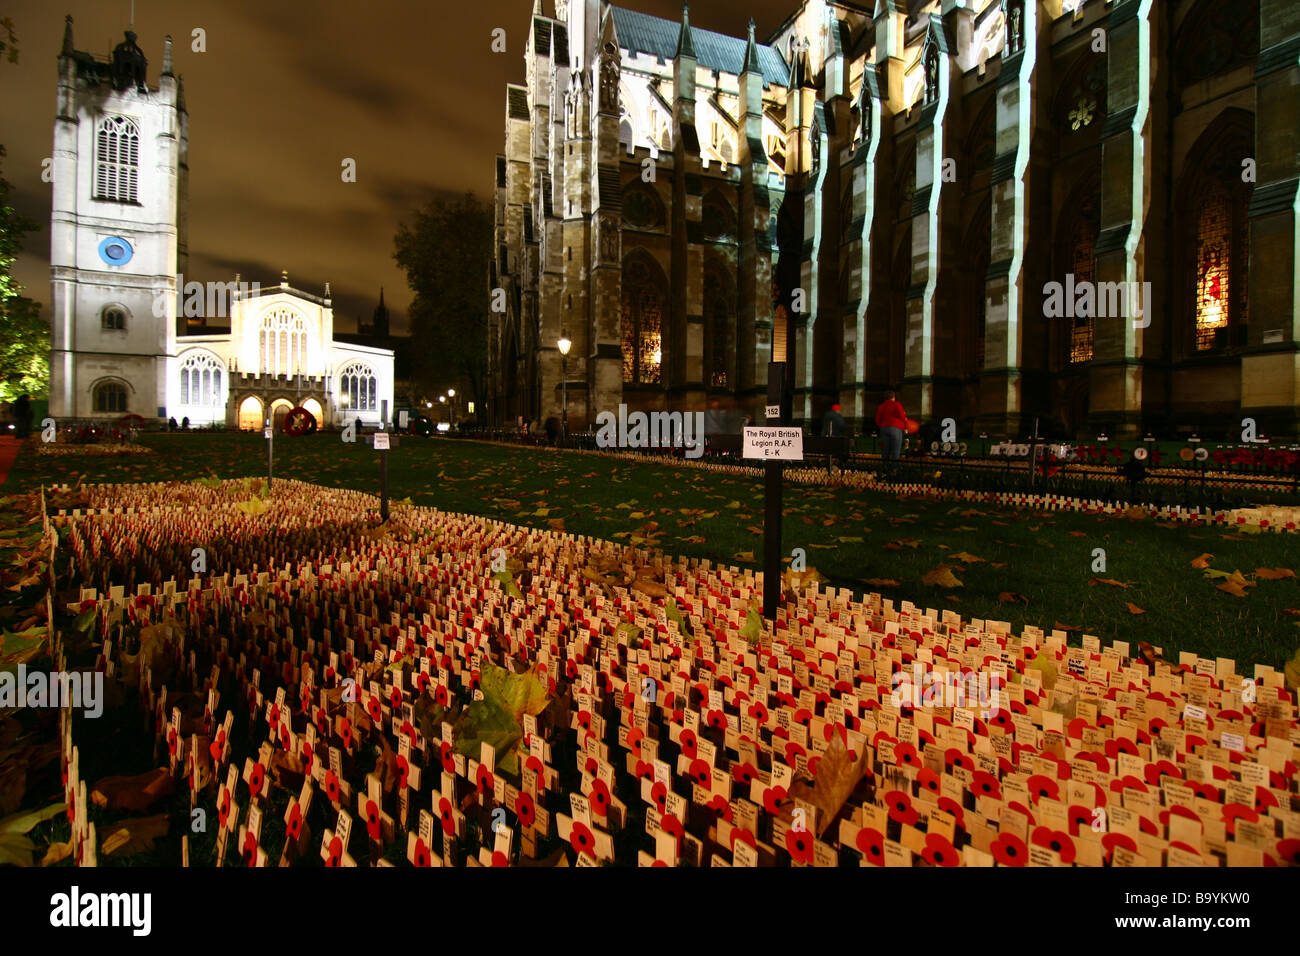 Remembrance day in Westminster. - Stock Image